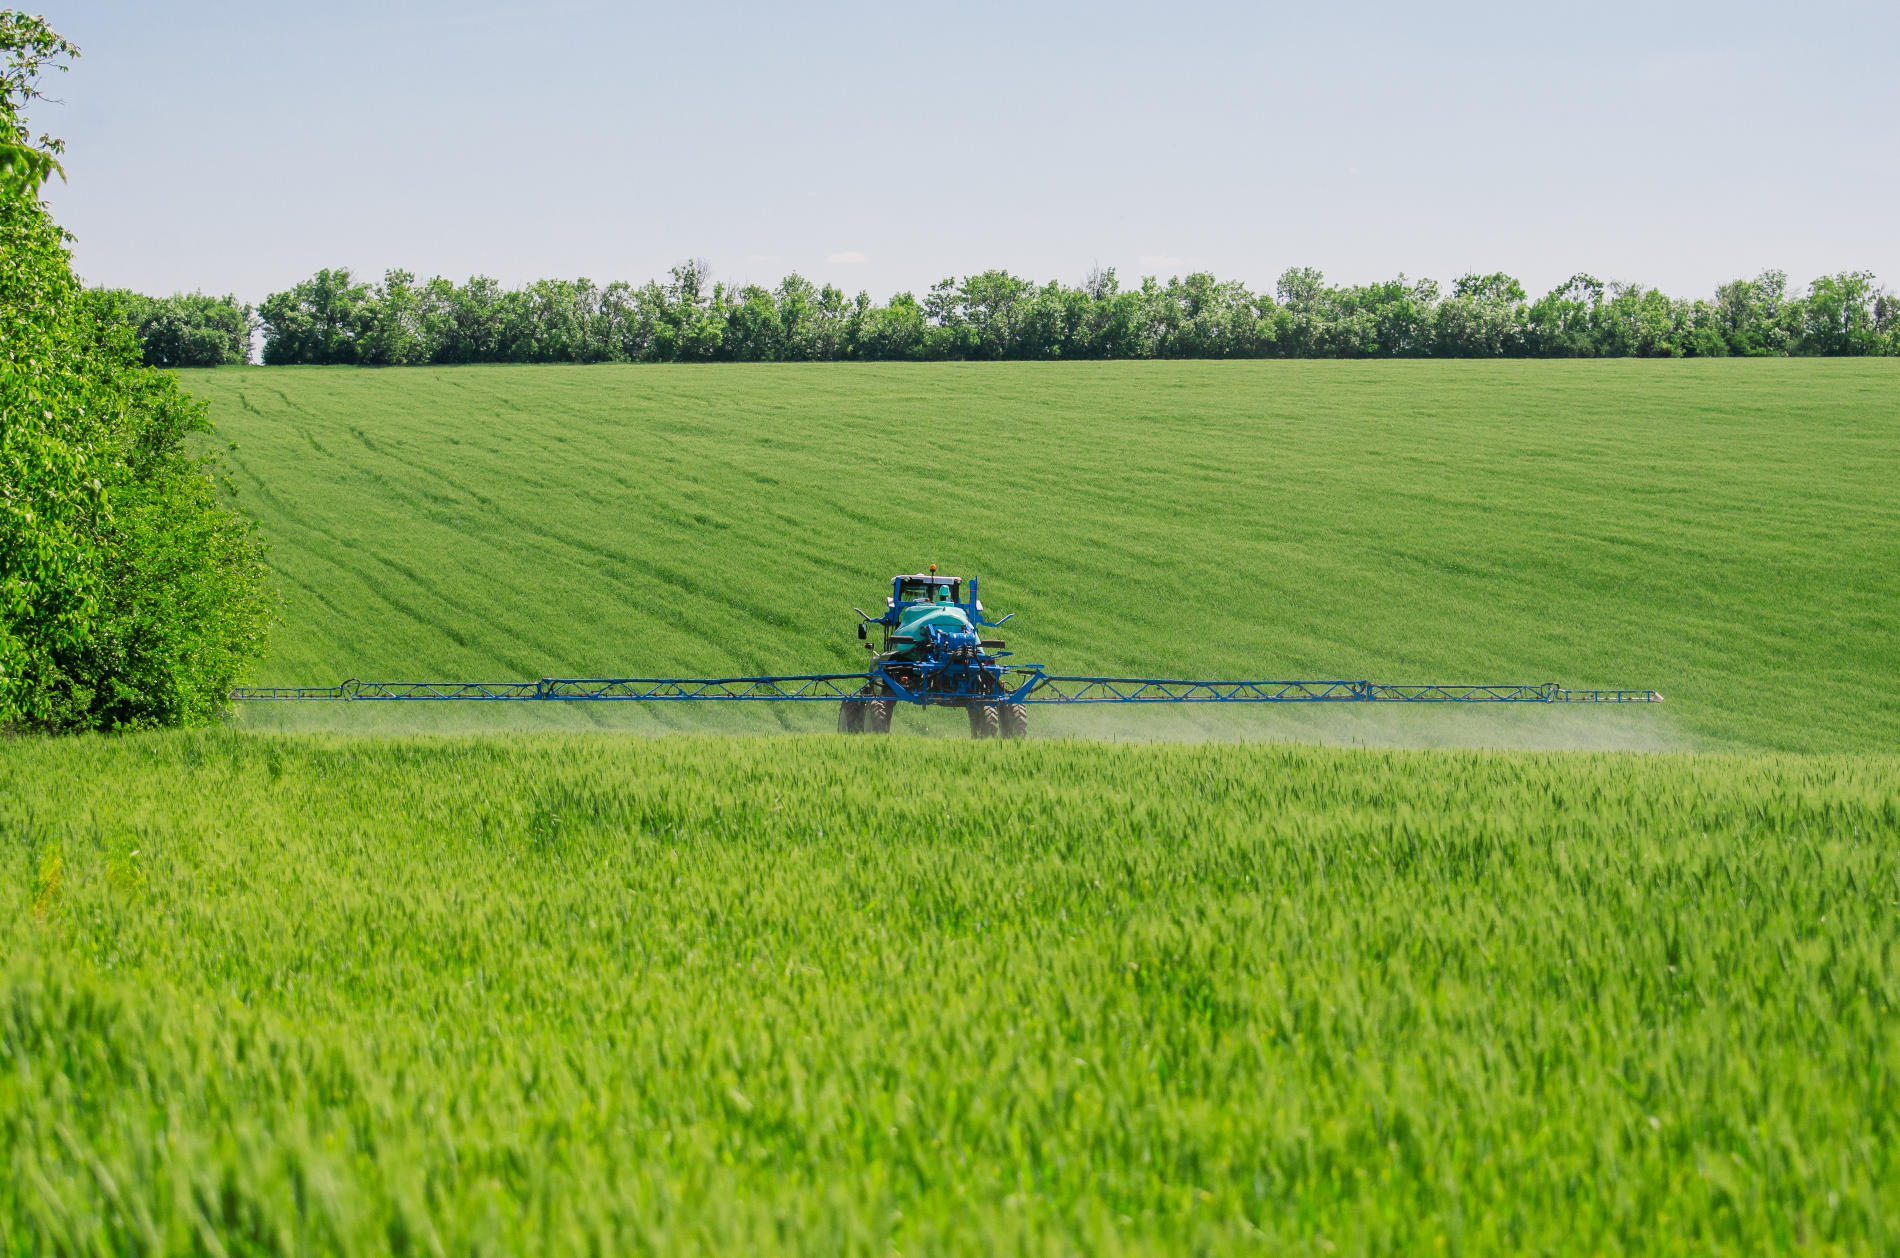 Agricultural sprayers, spray chemicals on young wheat.